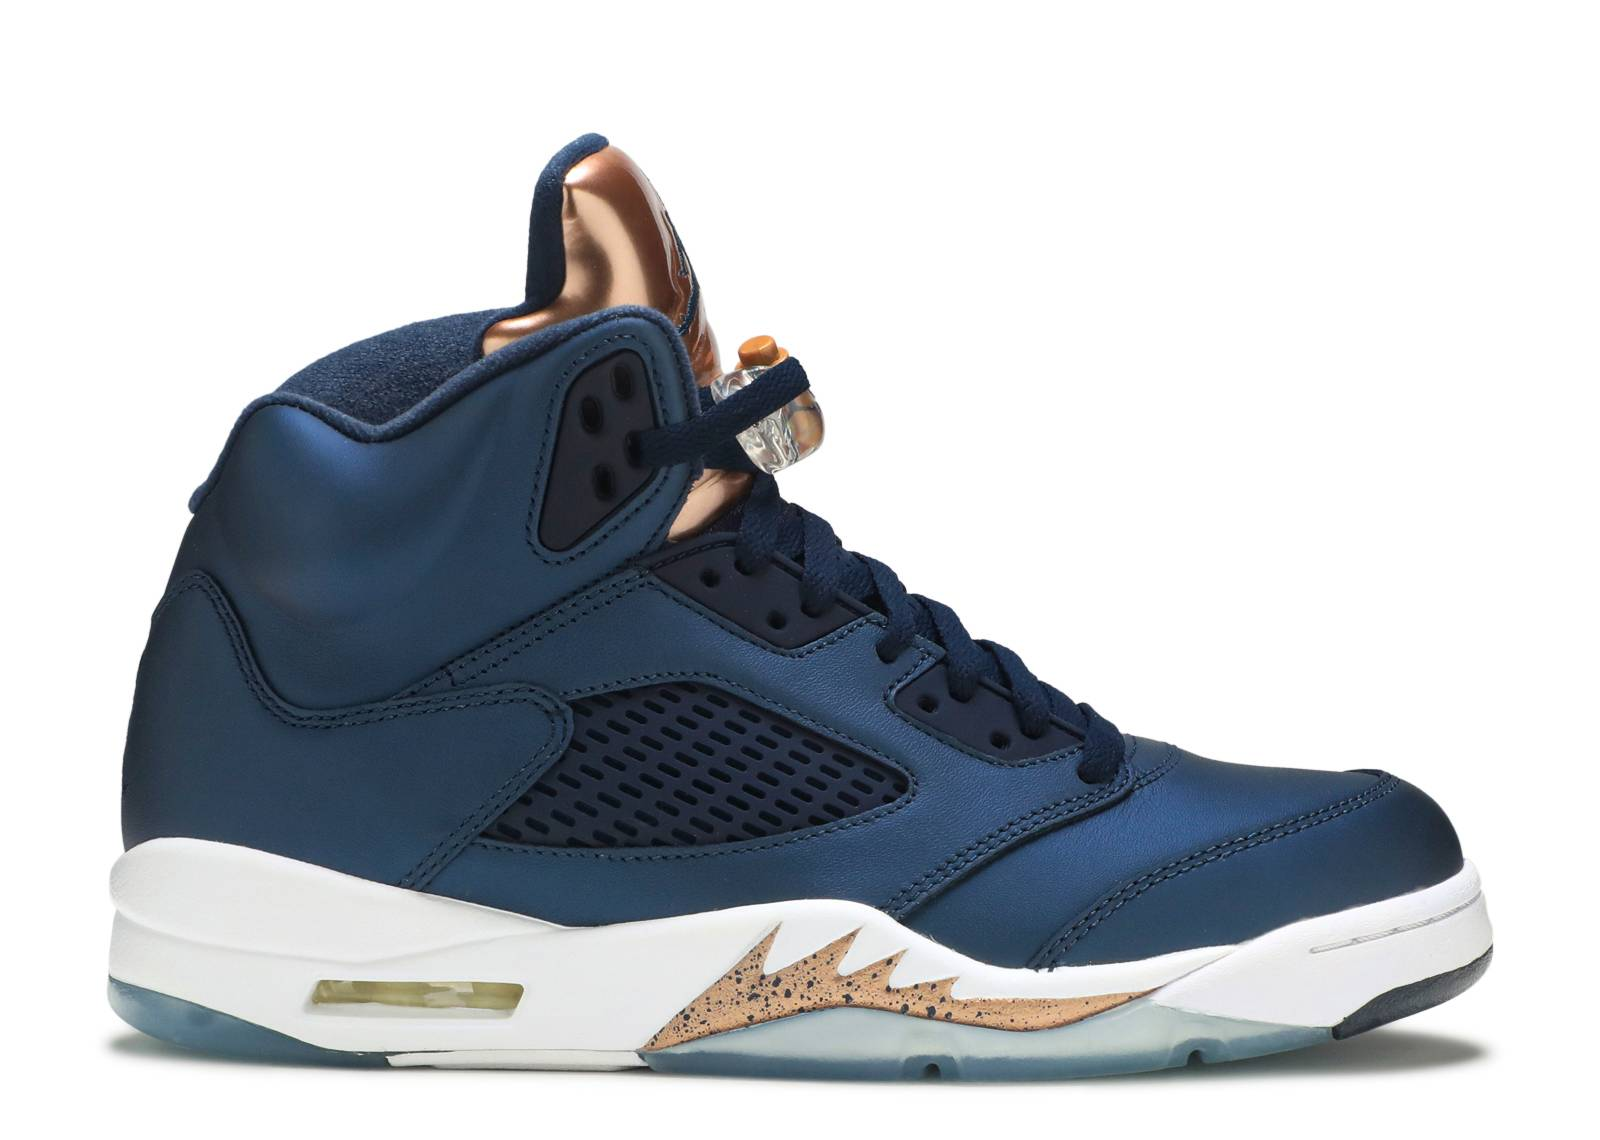 Jordan Air Jordan 5 Retro Mens Bronze